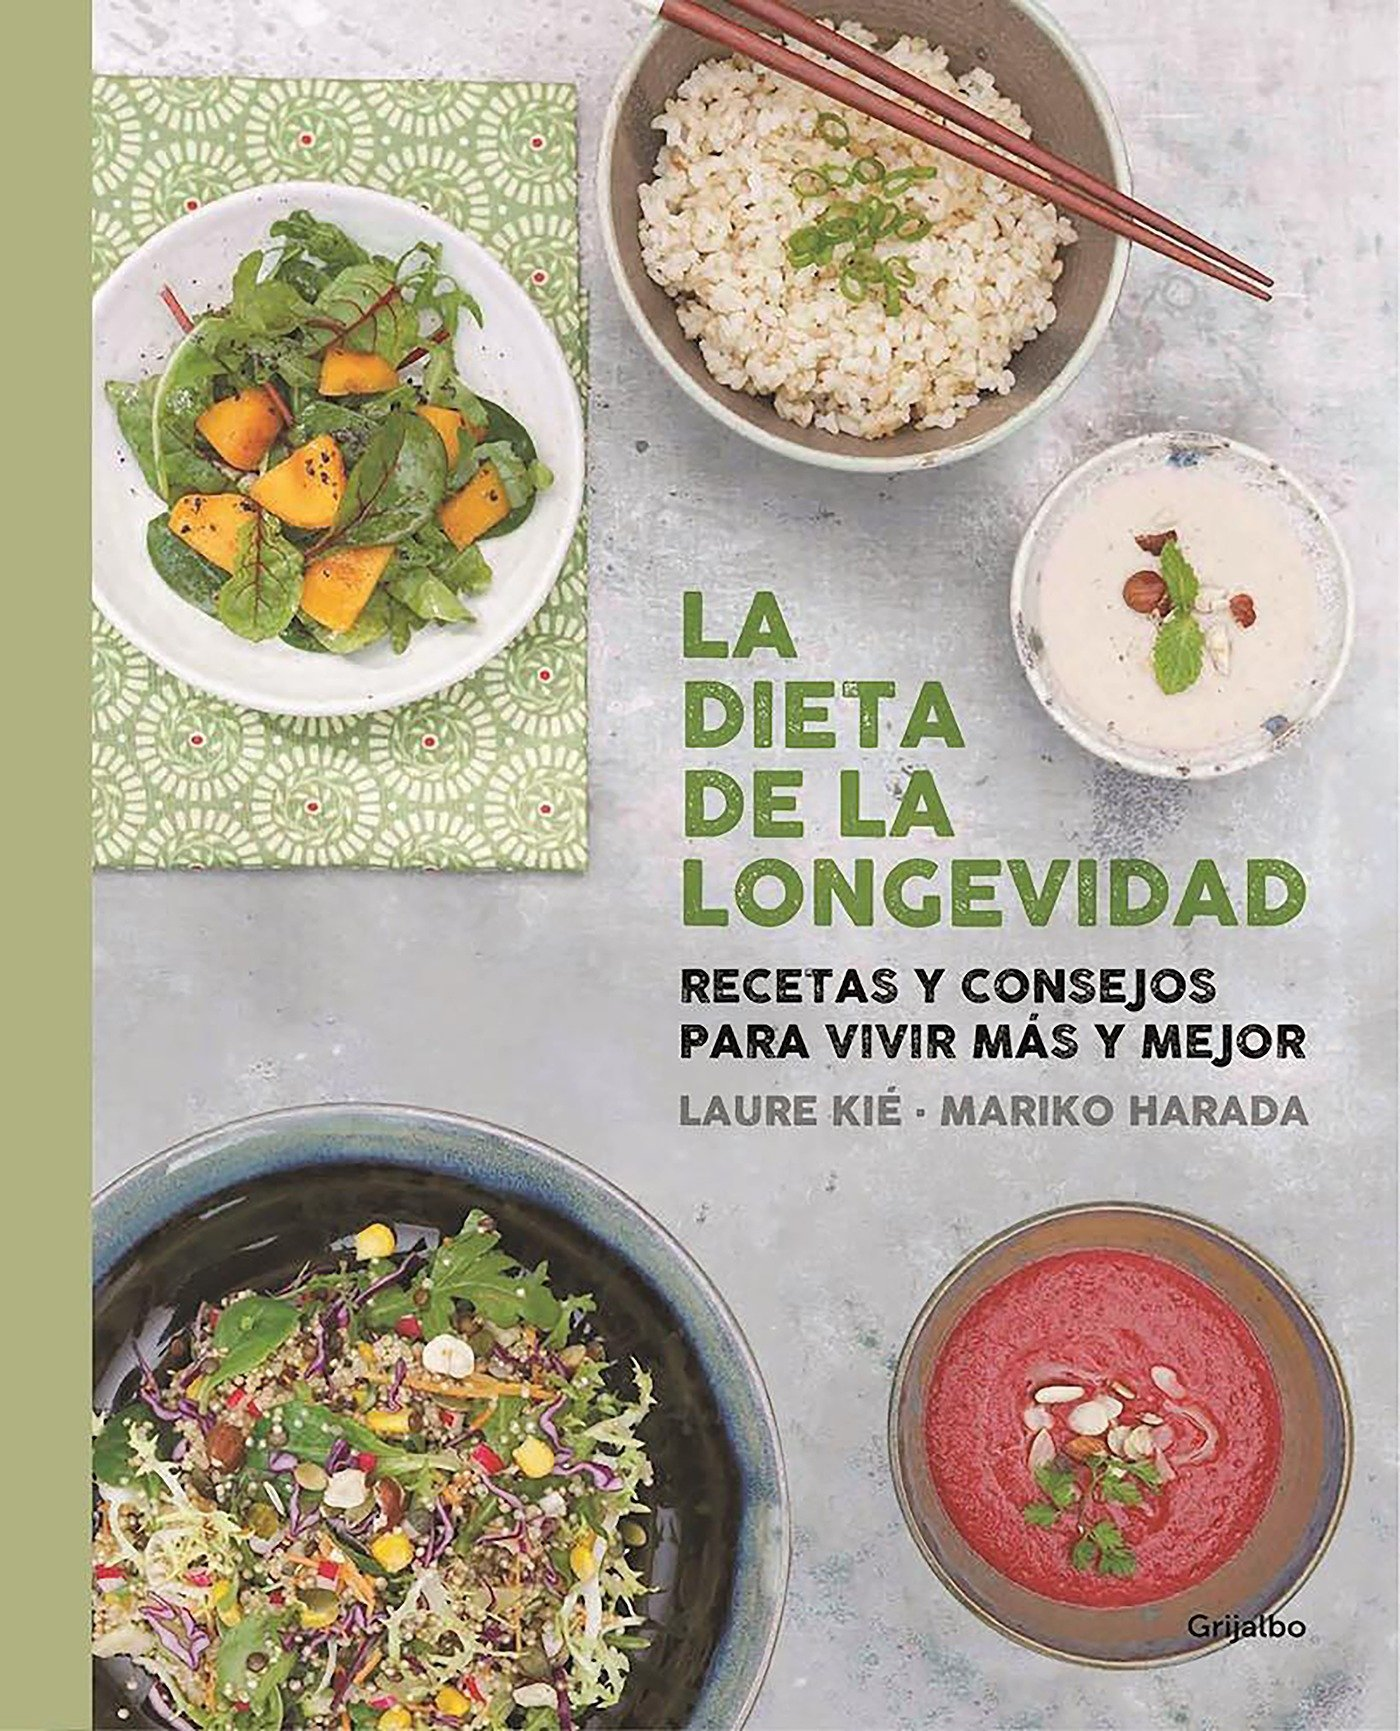 La dieta de la longevidad / The Longevity Diet (Spanish Edition): Laure Kie, Mariko Harada: 9788416220670: Amazon.com: Books